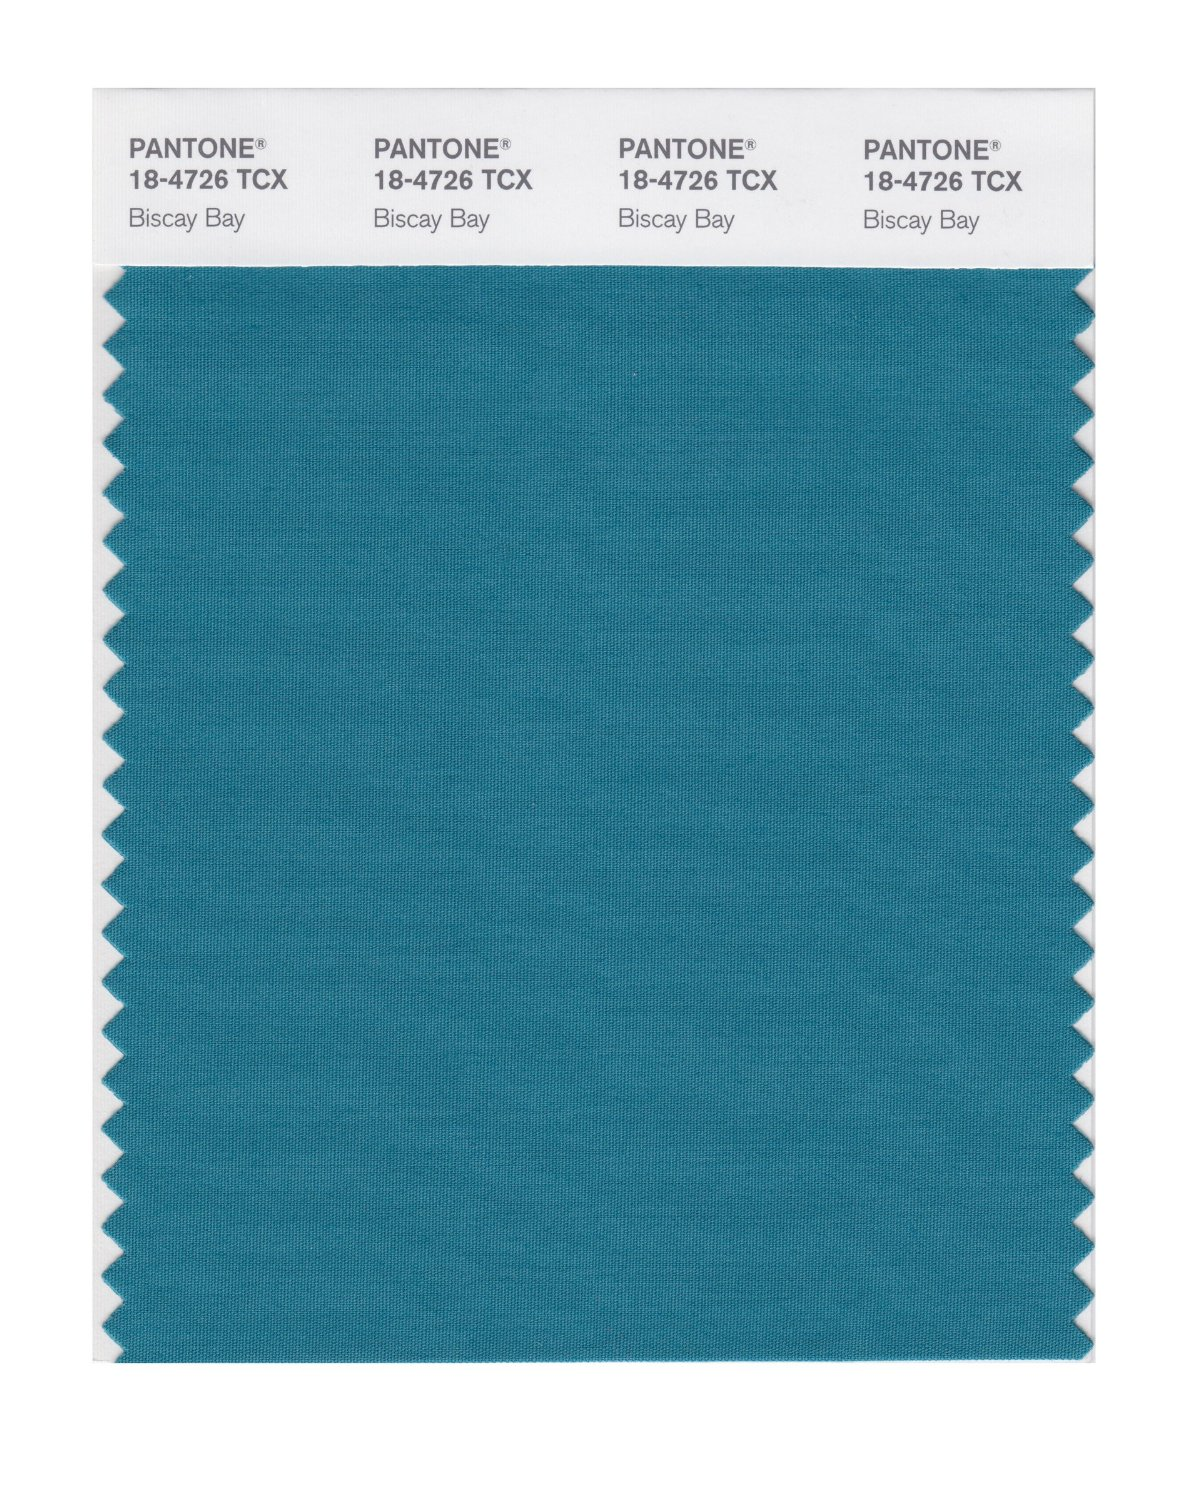 Pantone Smart Swatch 18-4726 Biscay Bay